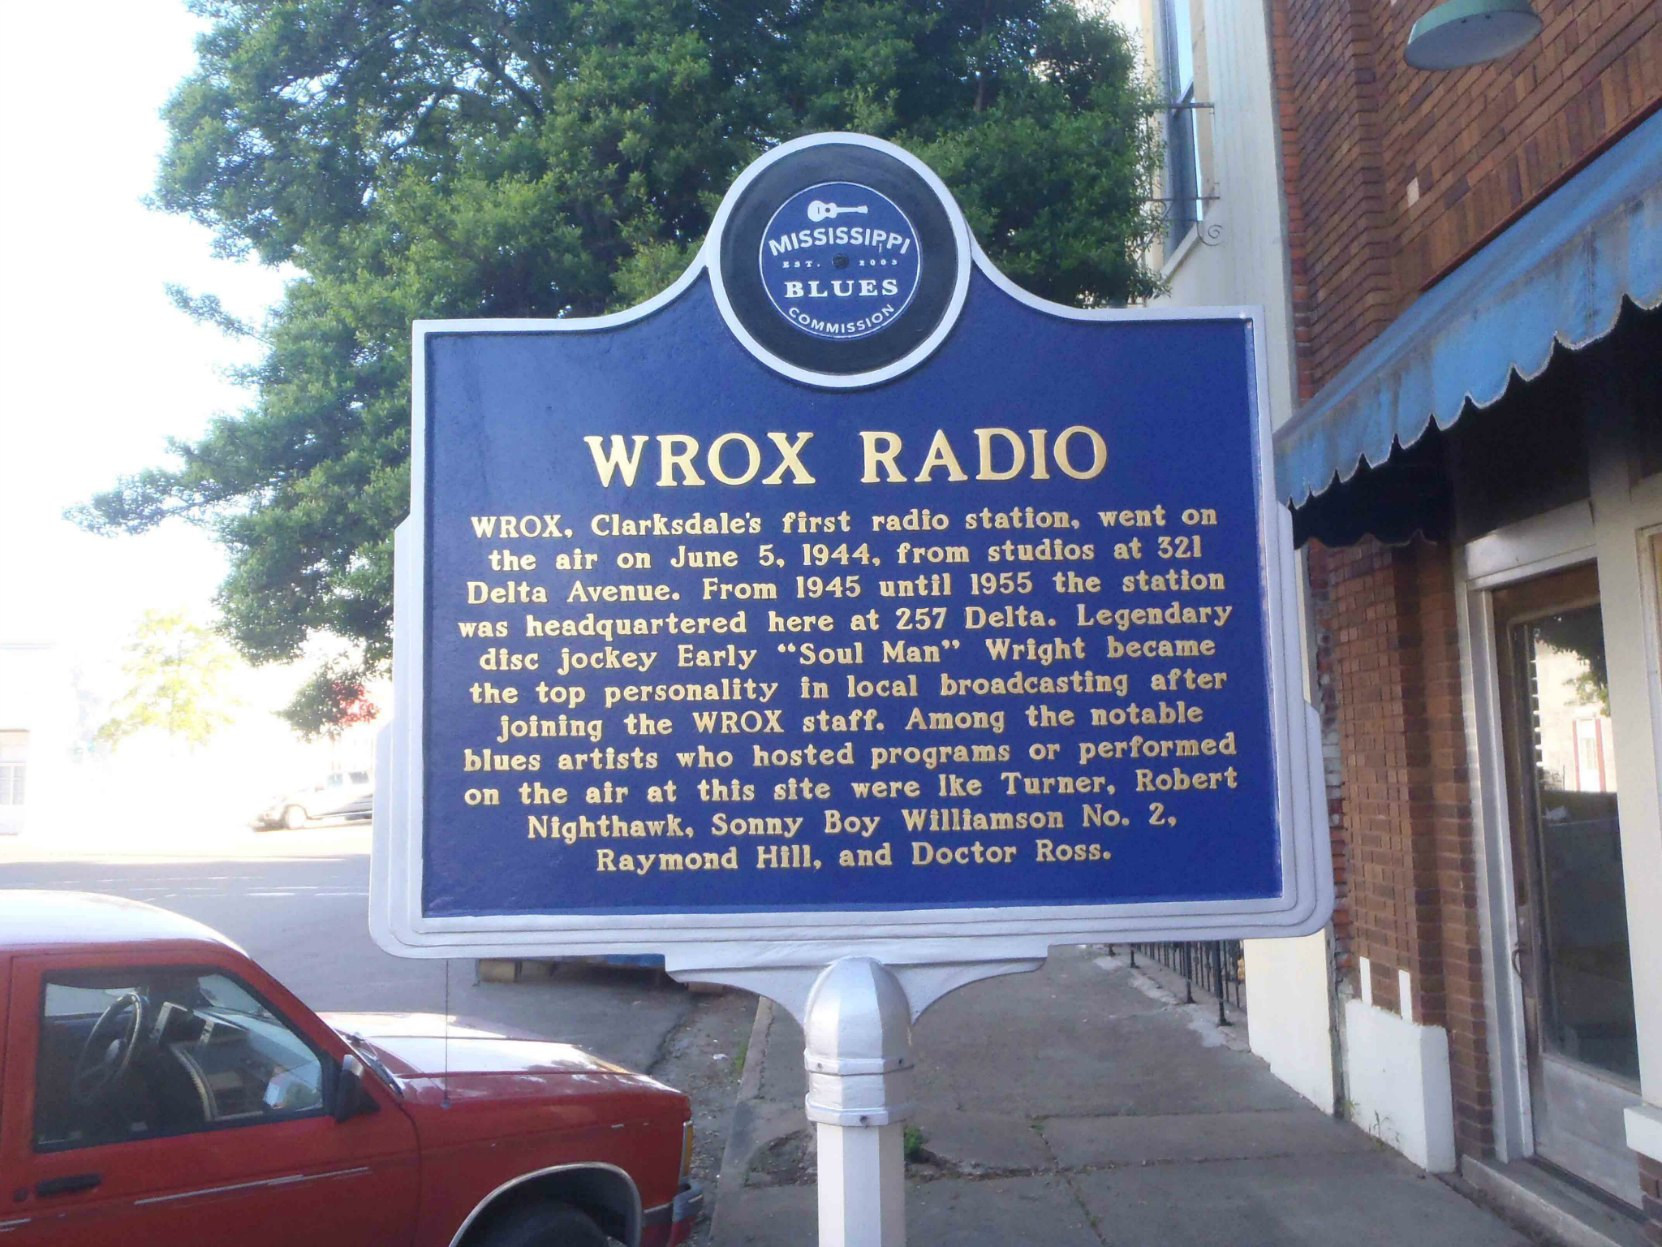 Mississippi Blues Trail marker for WROX, outside 257 Delta, Clarksdale, Mississippi.